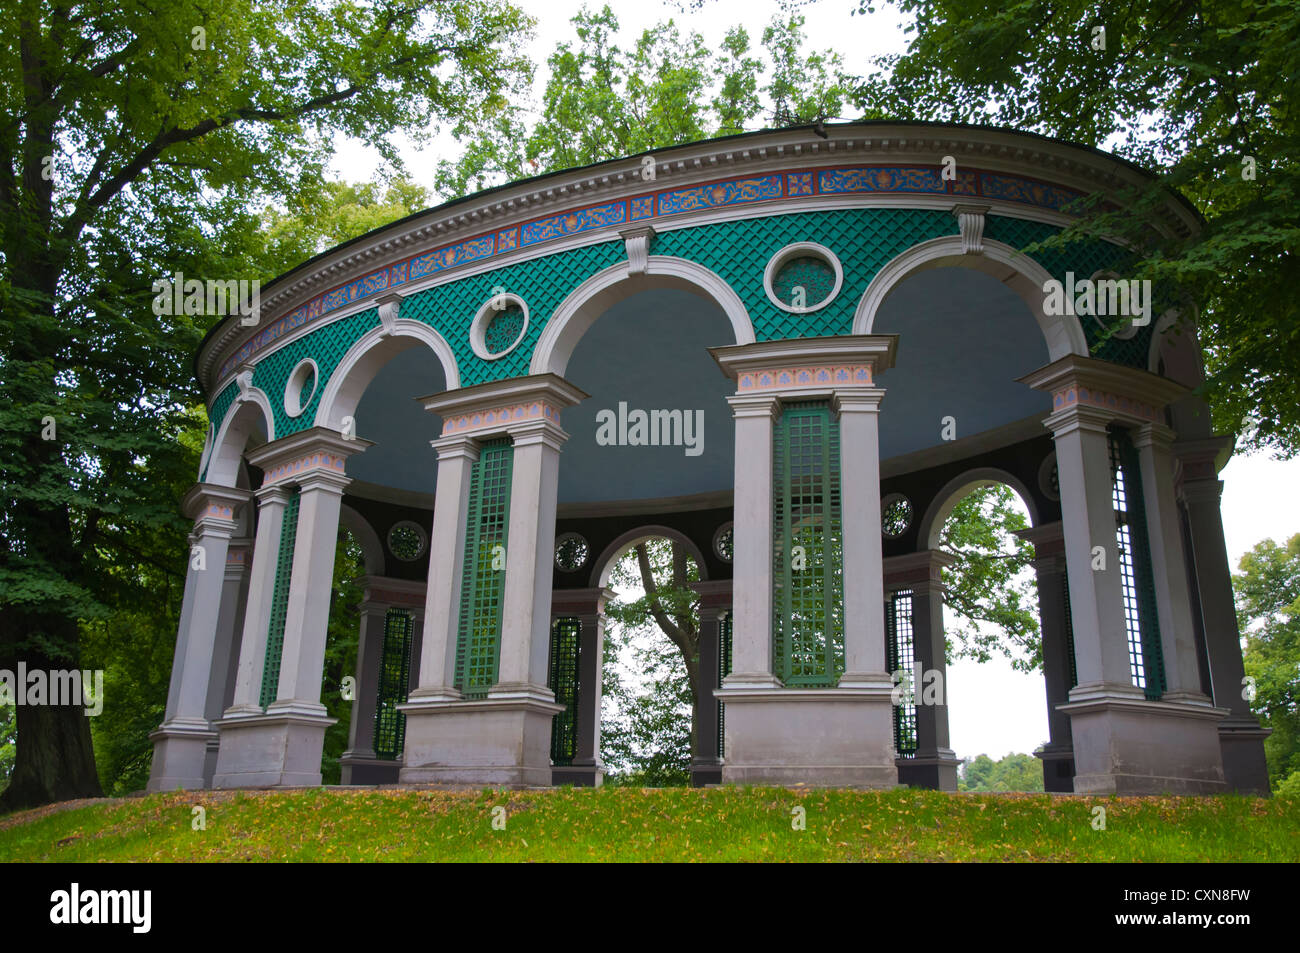 Ekotemplet the Echo temple (1790) outdoor dining area Hagaparken the Haga Park in Solna district Stockholm Sweden - Stock Image